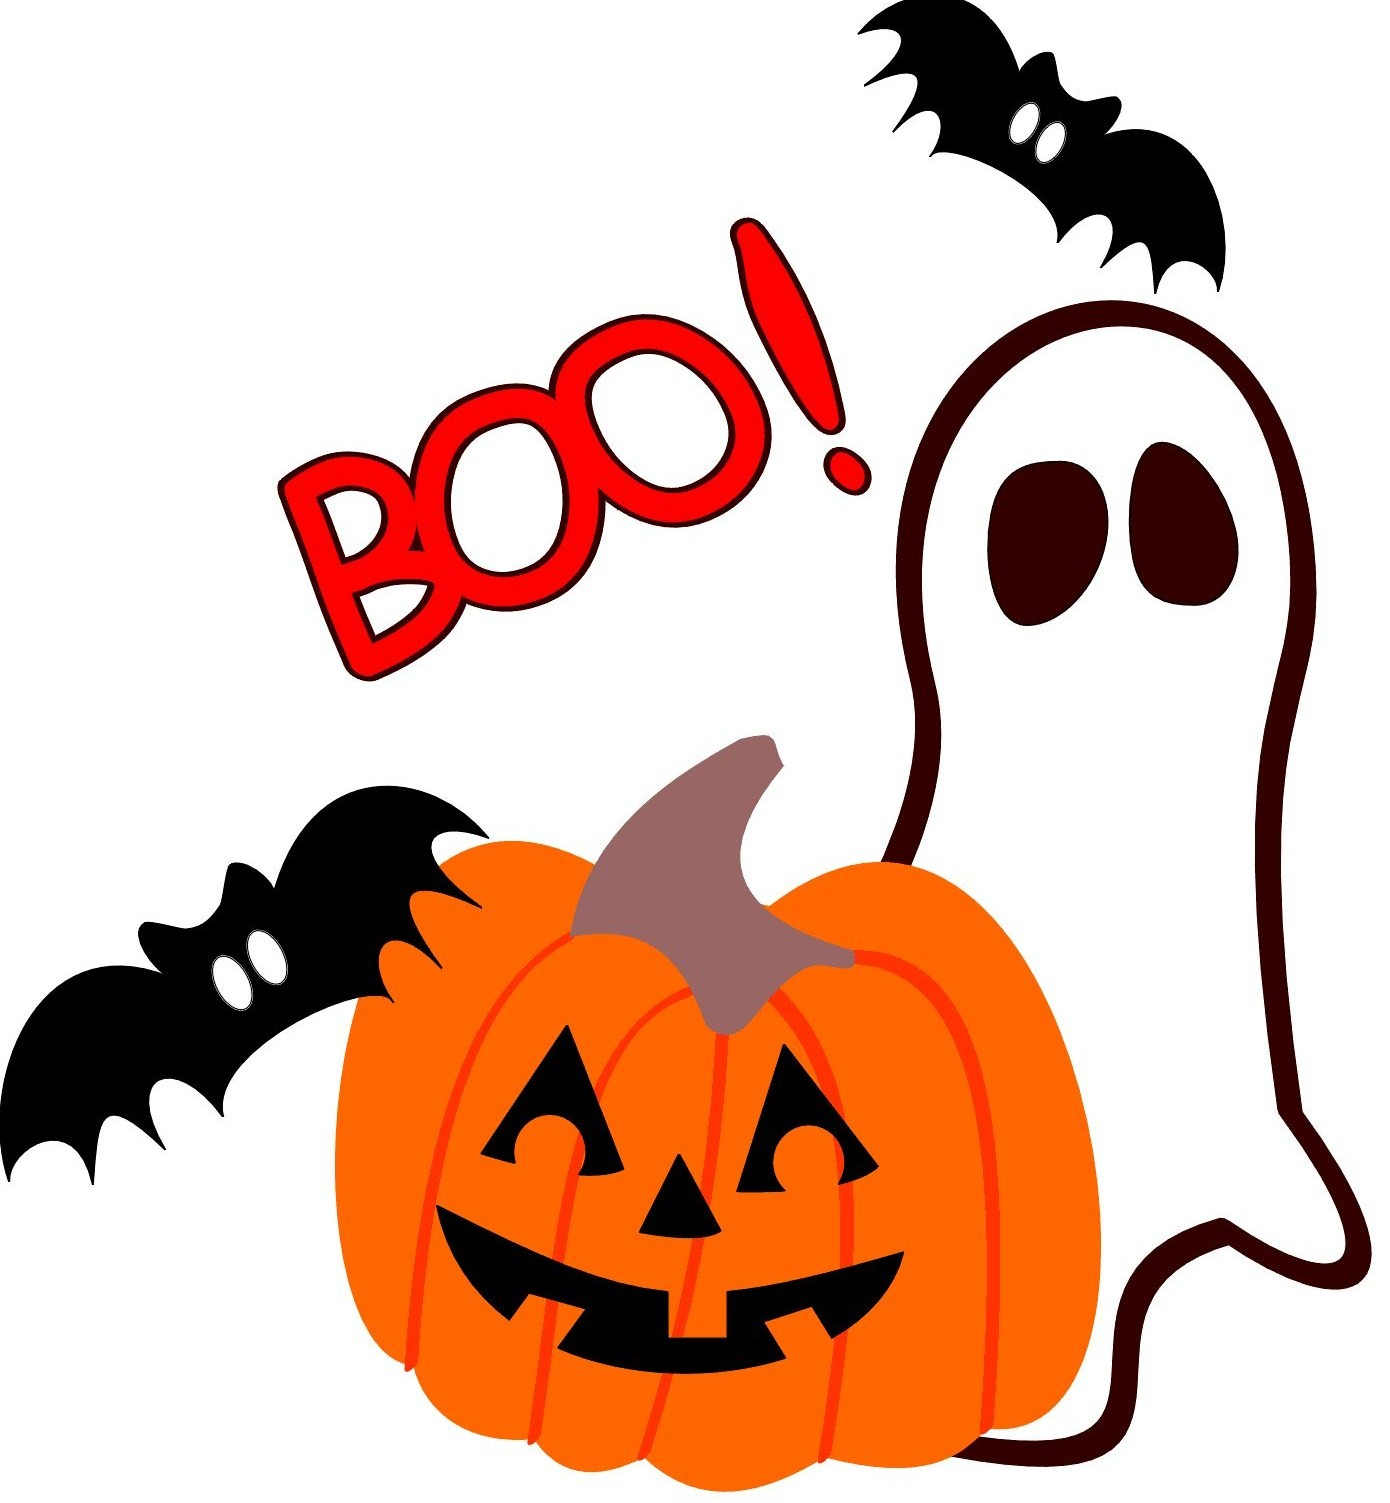 Halloween clipart cute ghost